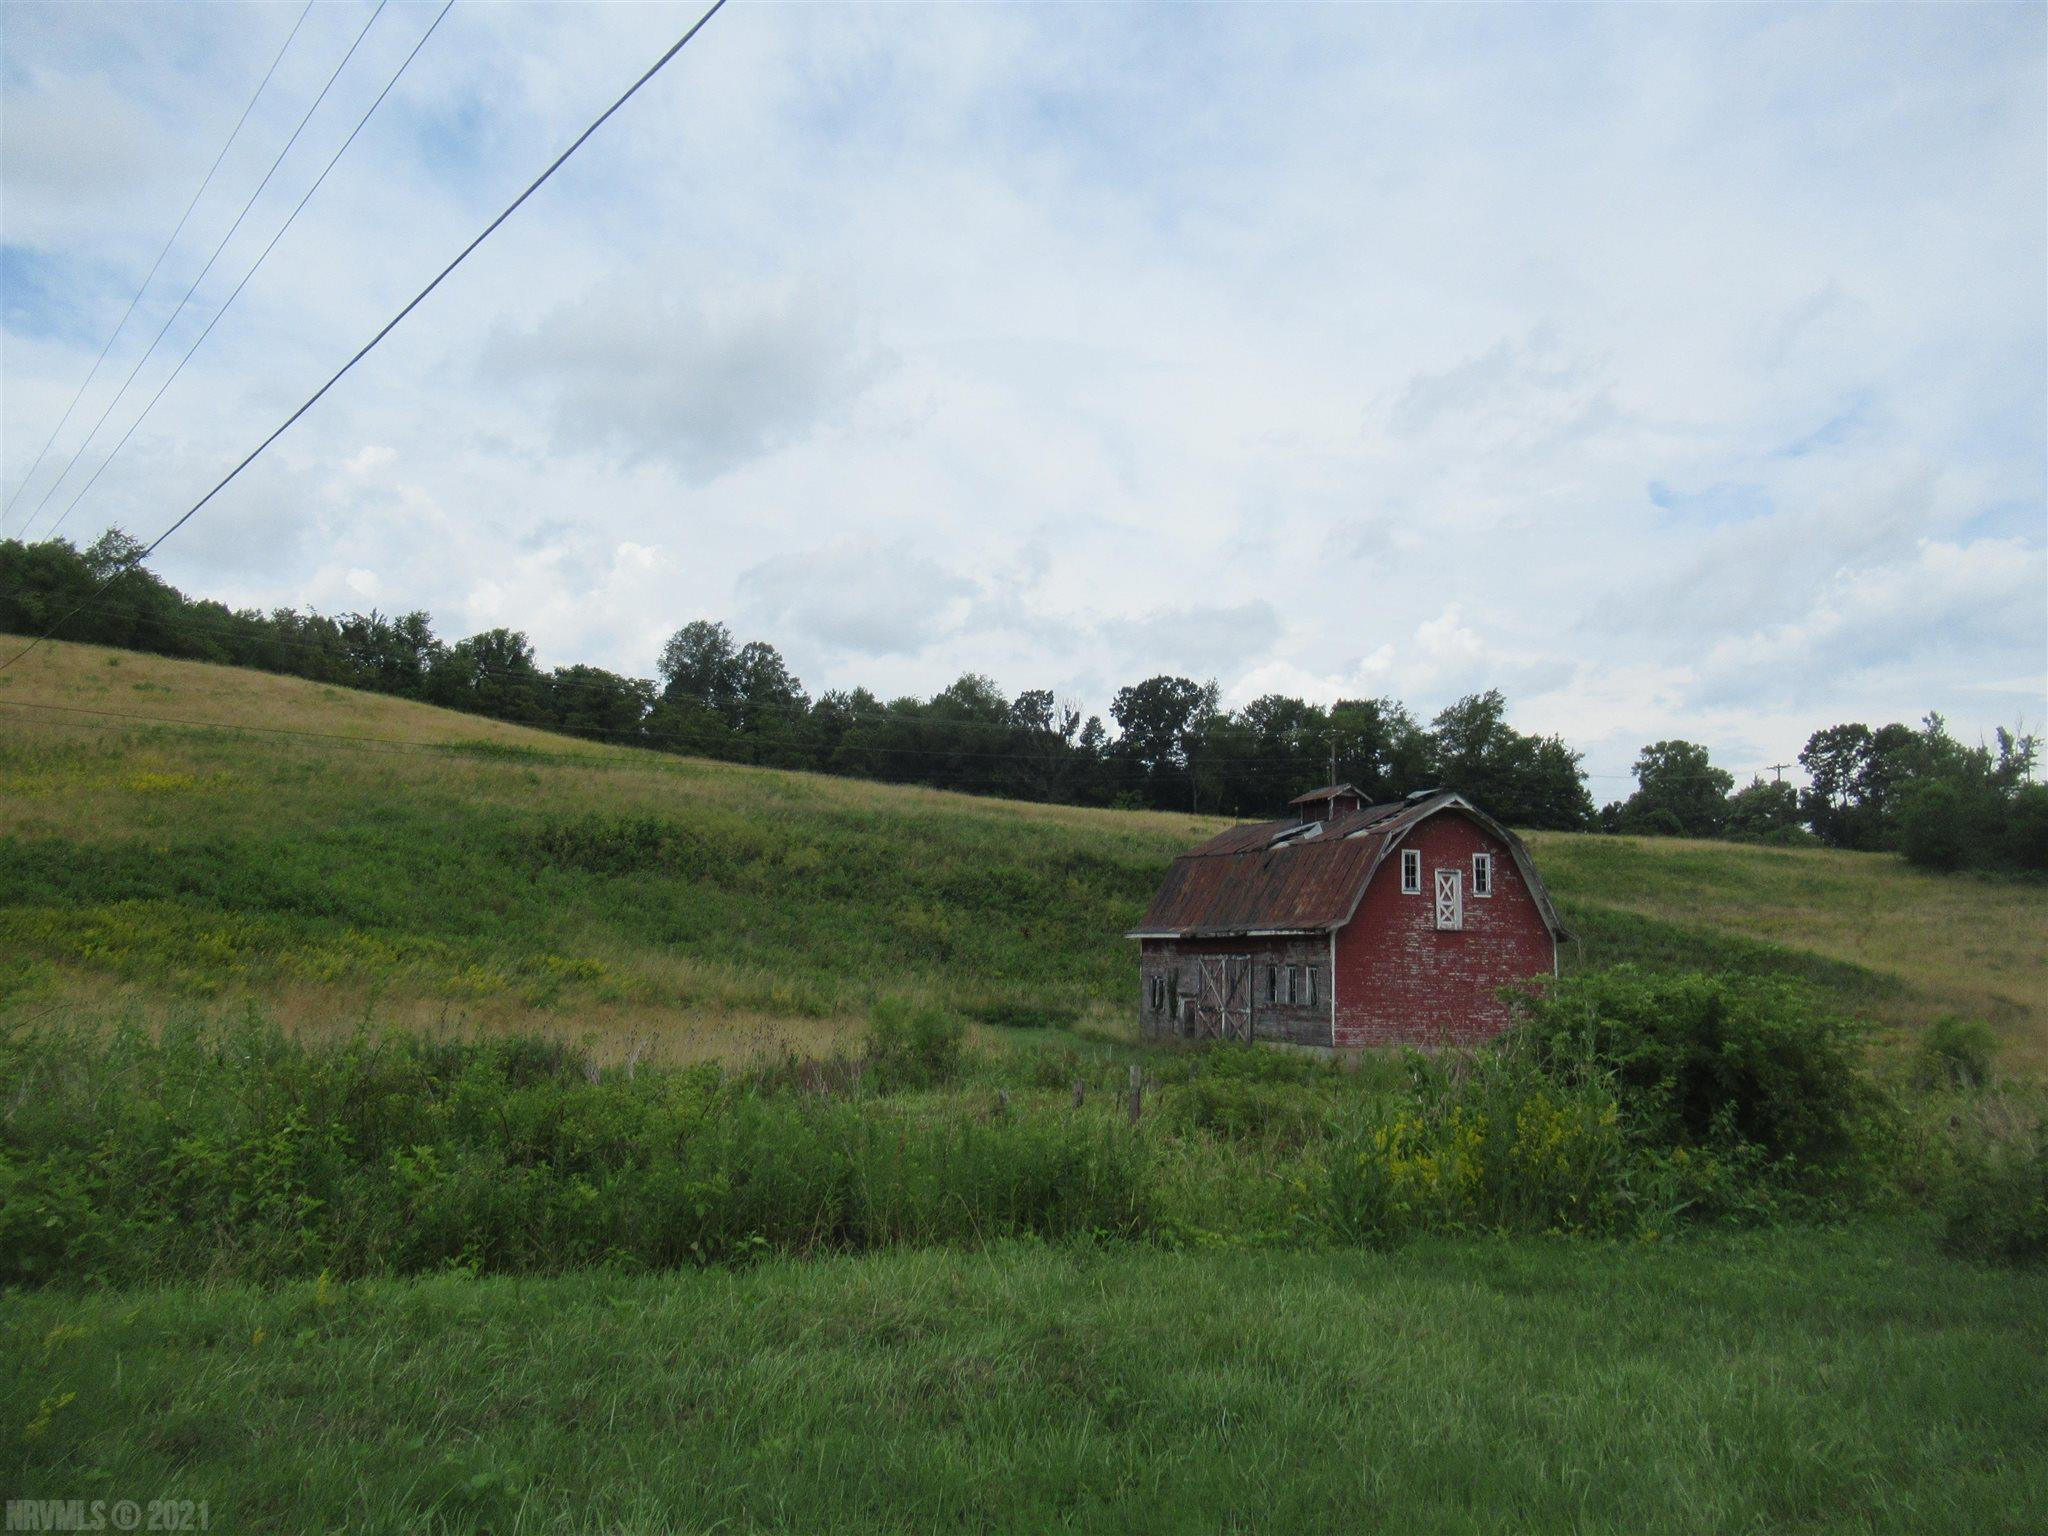 Commercial property with frontage on Rt 100, Interstate 81 and I-81 entry ramp, long frontage along the New River Trail. Public water available